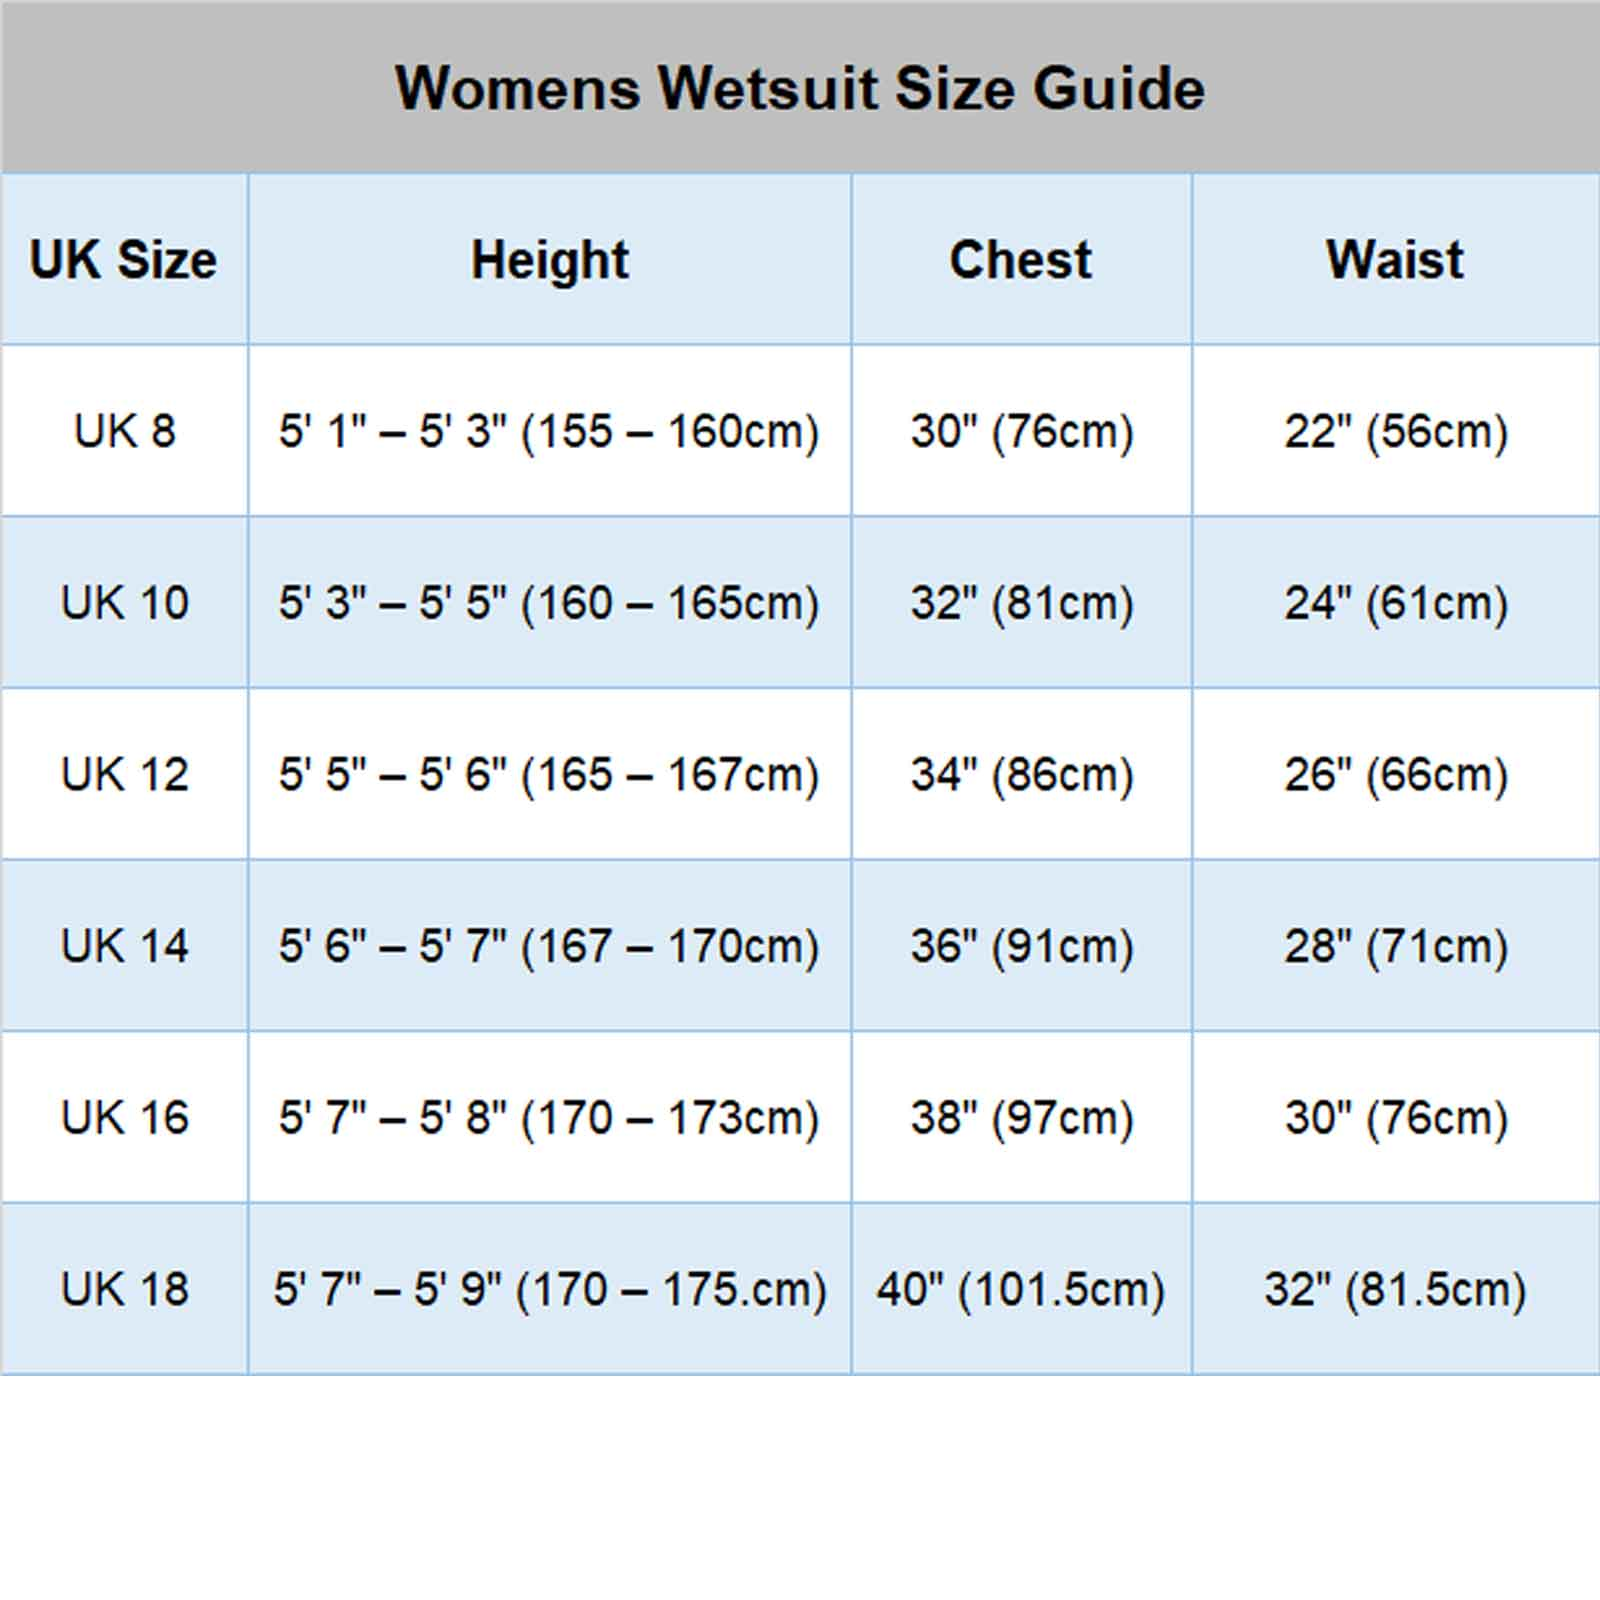 https://www.circle-one.co.uk/wp-content/uploads/2019/05/Womens-Wetsuit-Size-Guide.jpg